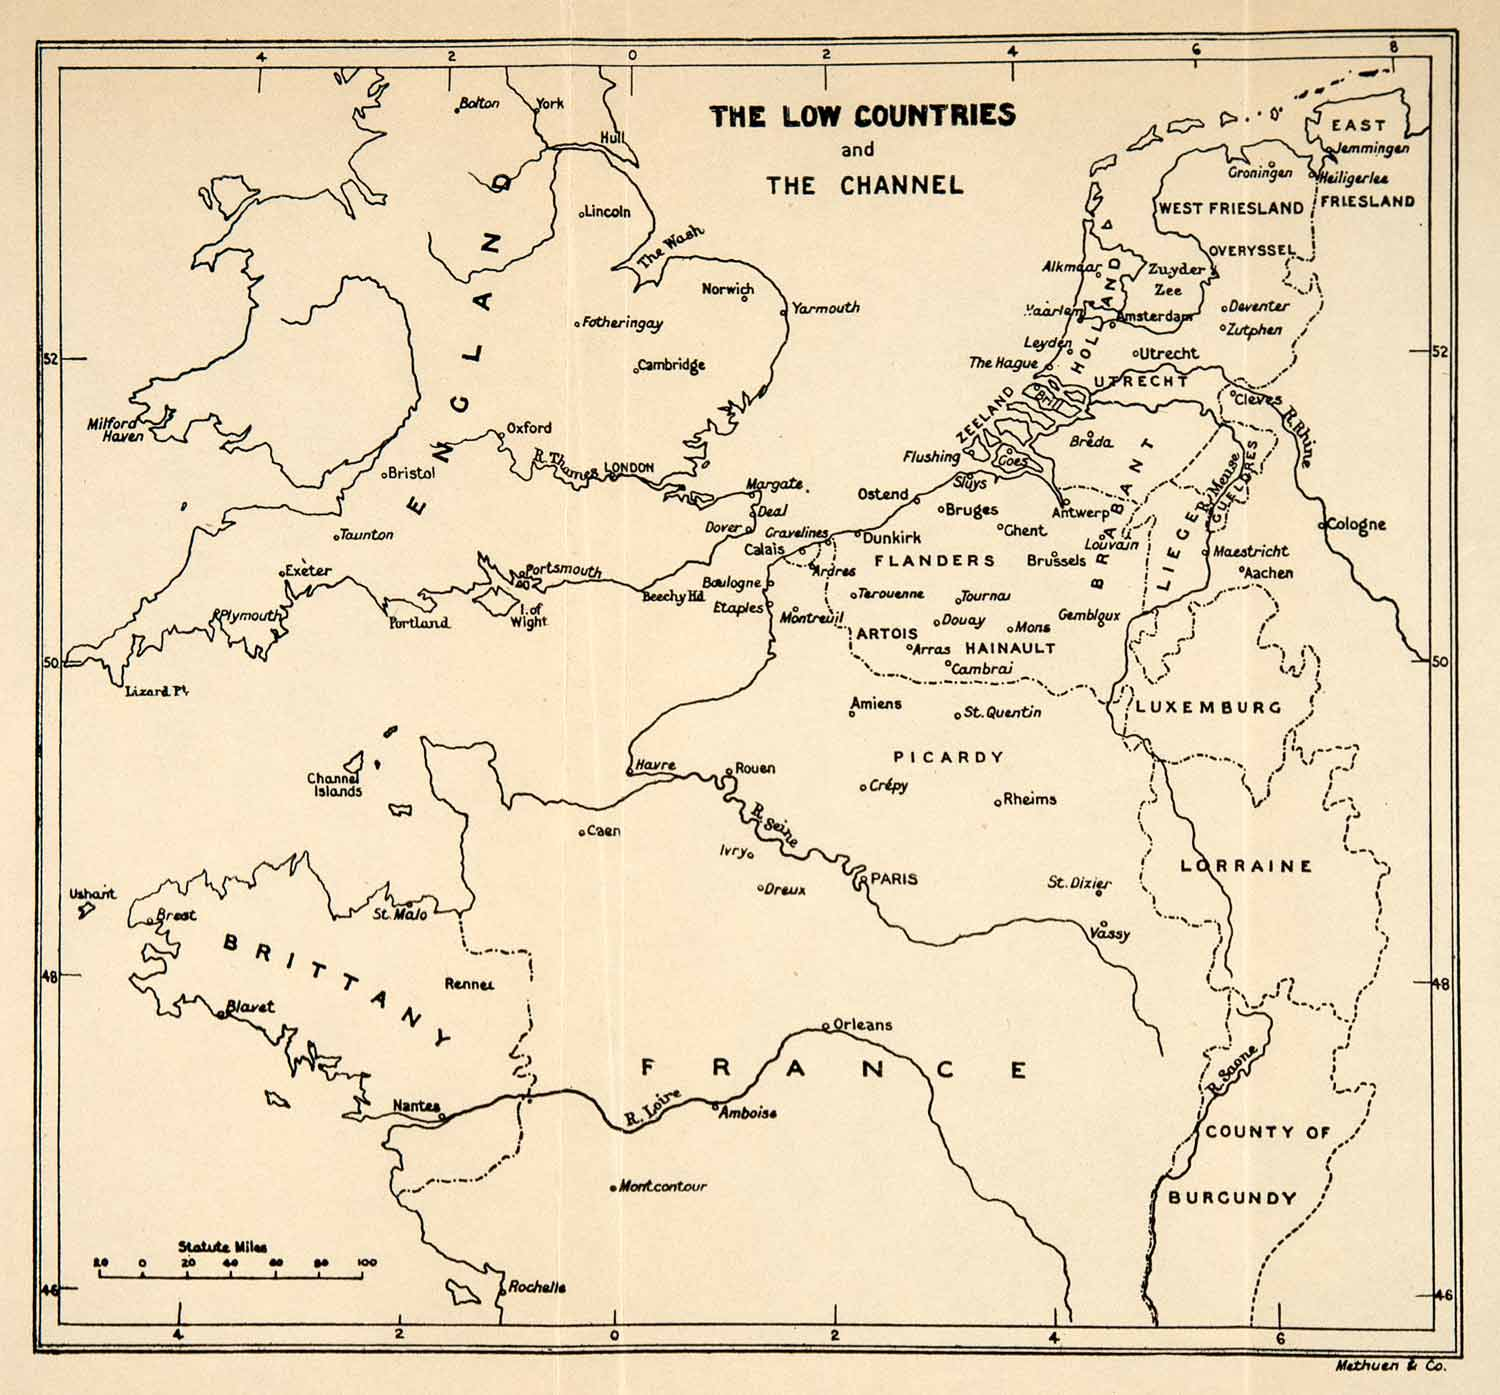 1932 Print Map England Brittany France Burgundy Lorraine Luxemburg on counties and cities in england, coloring pages map of england, new york state map england, map of britain and england, map dorking england, satellite view of england, zoomable map of england, large map of england, po river map of england, green map of england, travel map of england, physical map of england, detailed map of england, map of scotland and northern england, full map of england, map of europe england, dark ages map of england, outline map of england, cities of england, road map of southern new england,